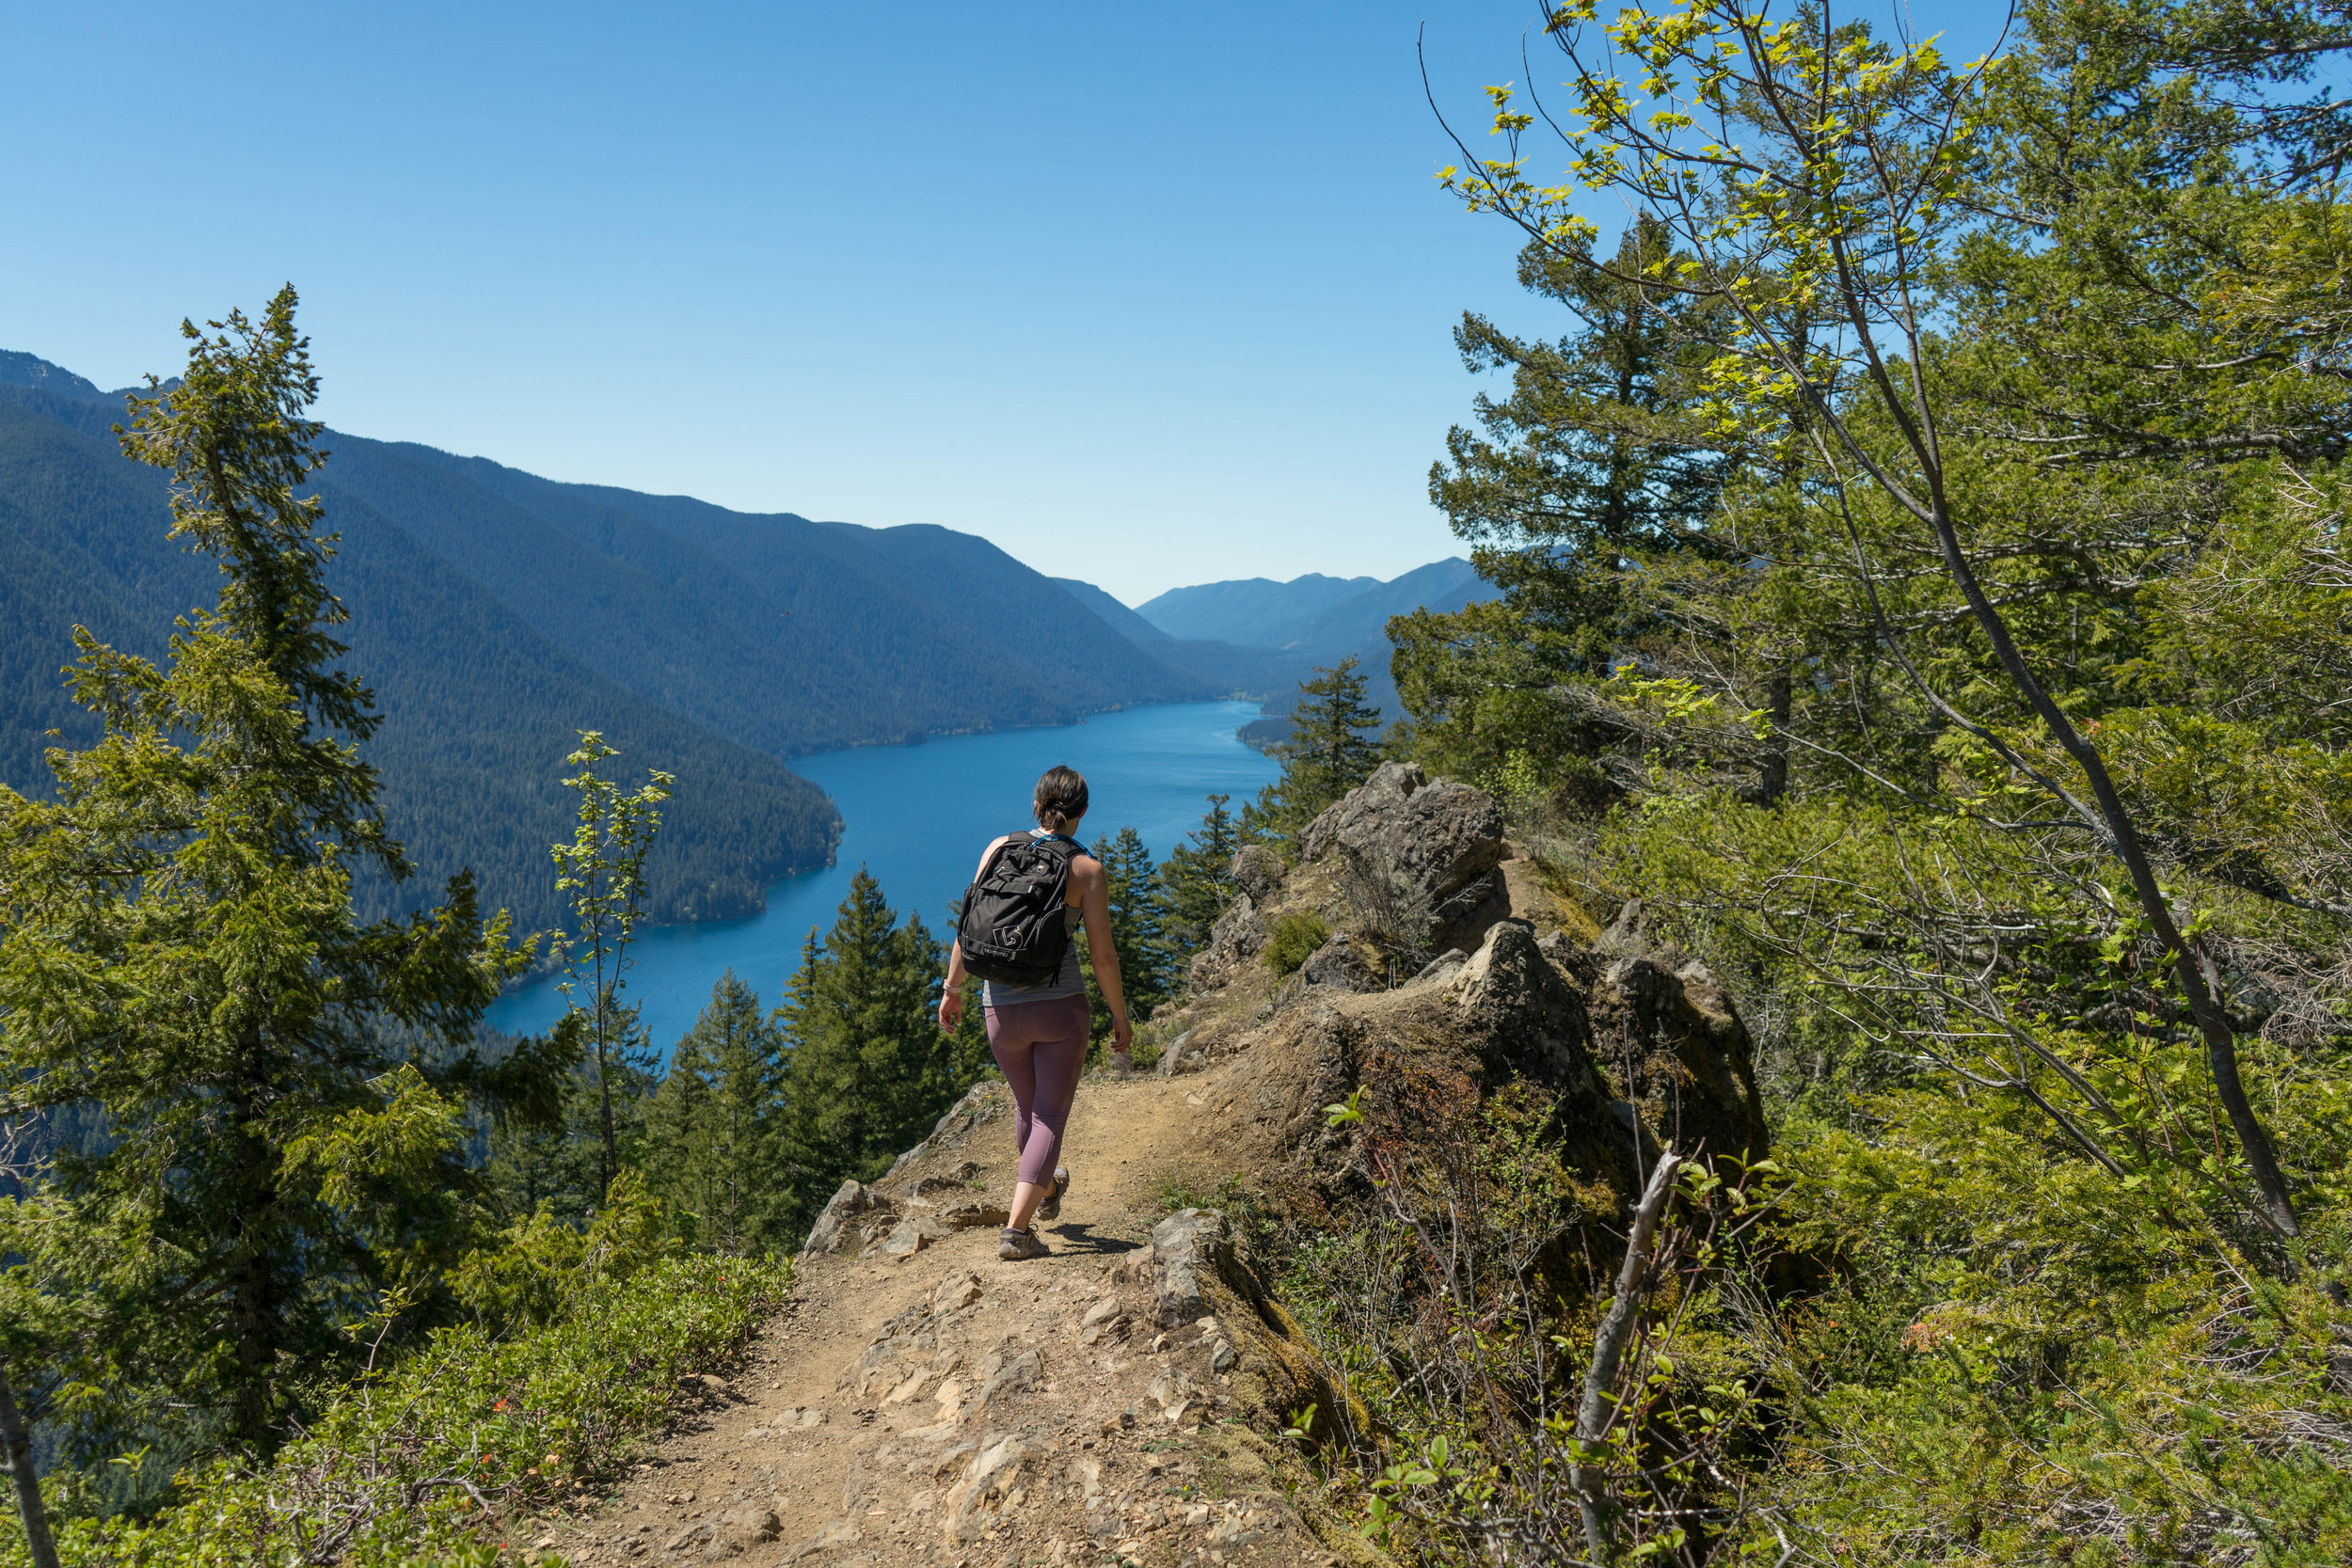 Get to hikes like this one on the Olympic Peninsula by utilizing car sharing services!